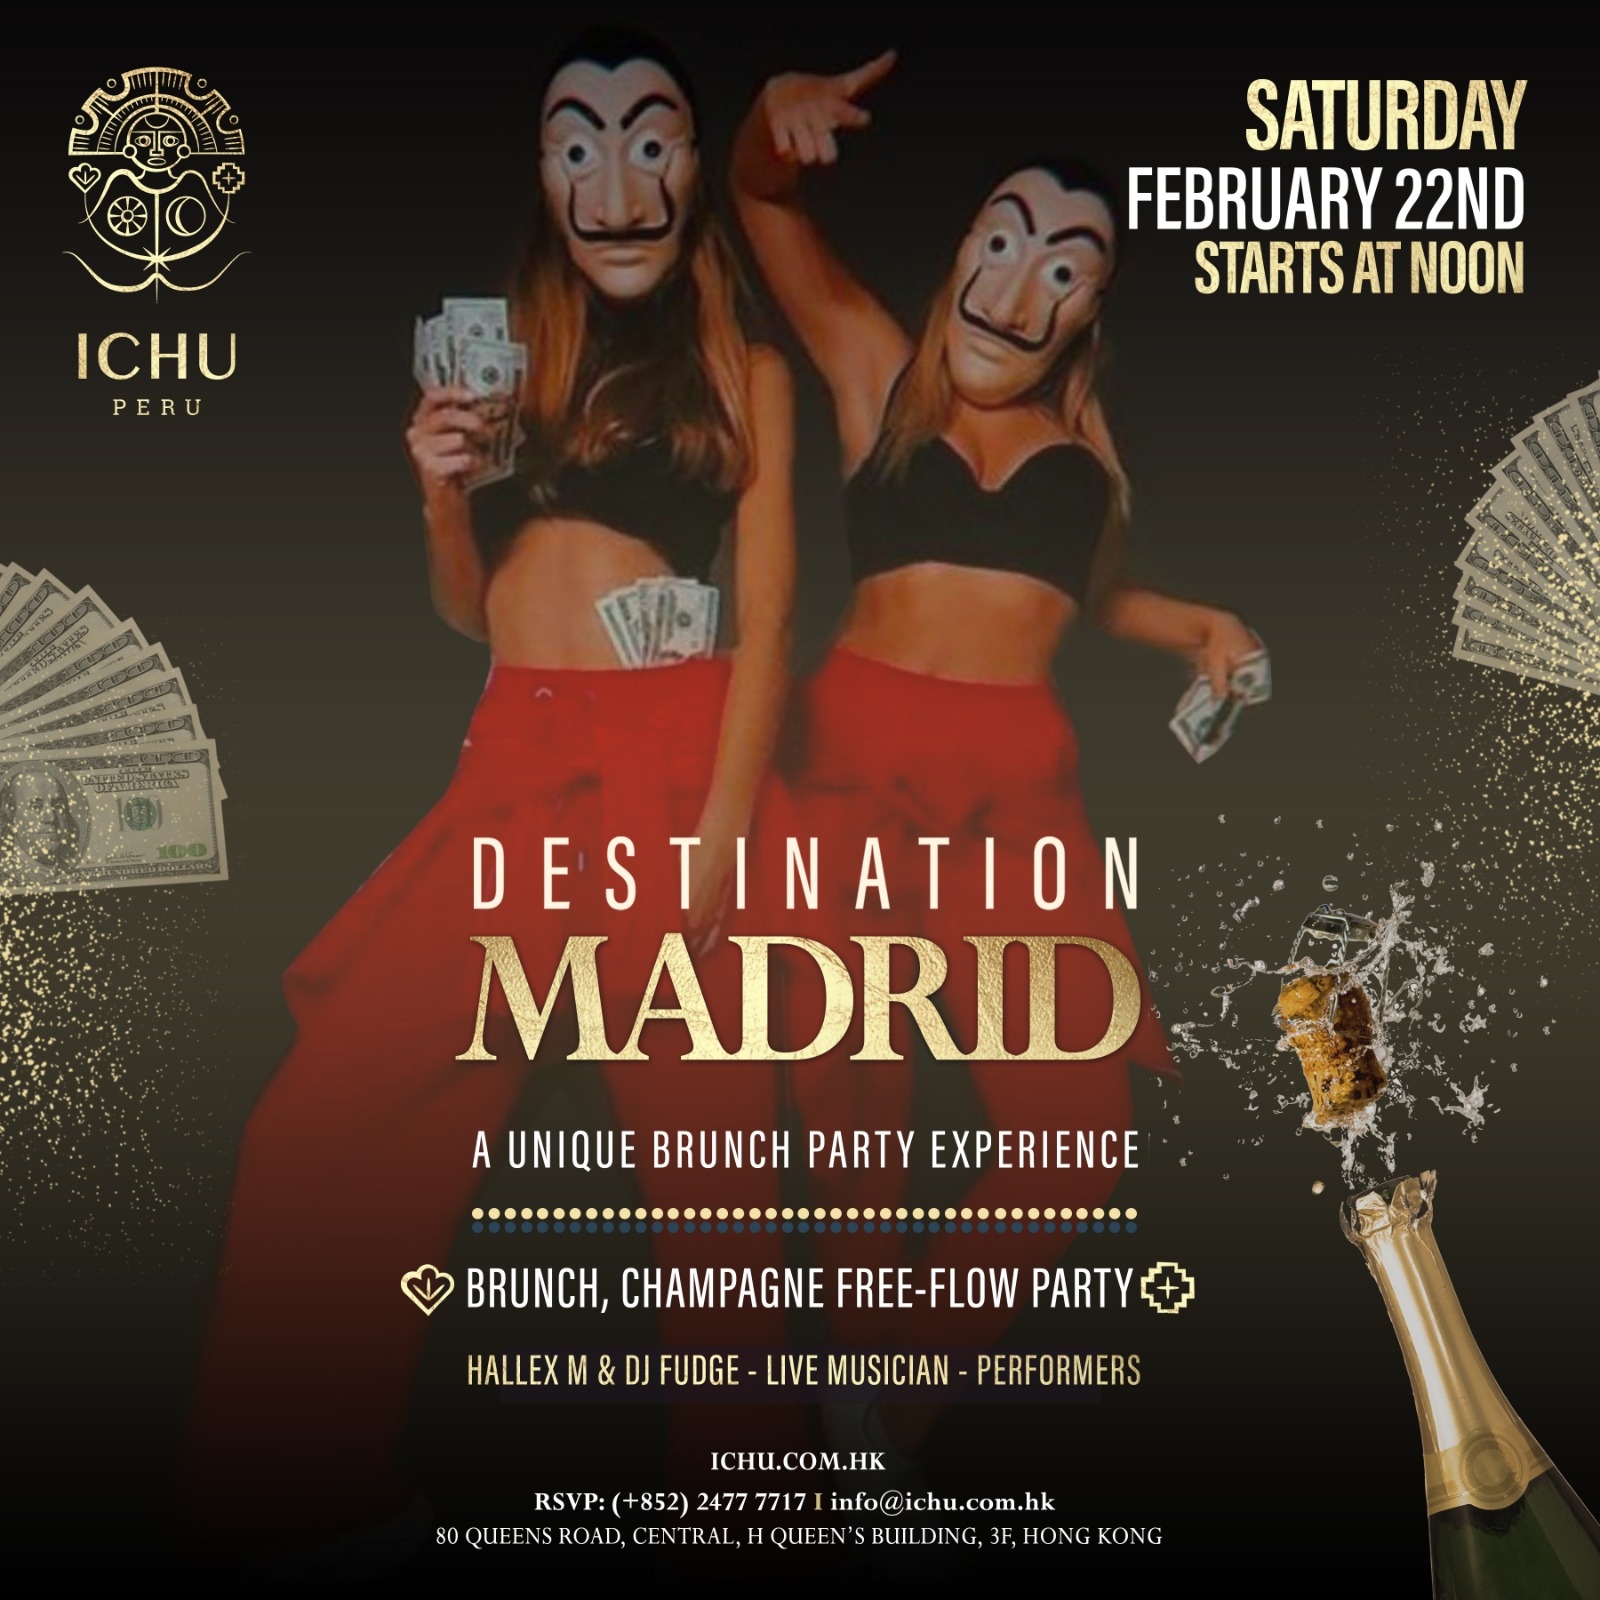 ICHU Restaurant & Bar | Events | Destination Madrid – Brunch Party